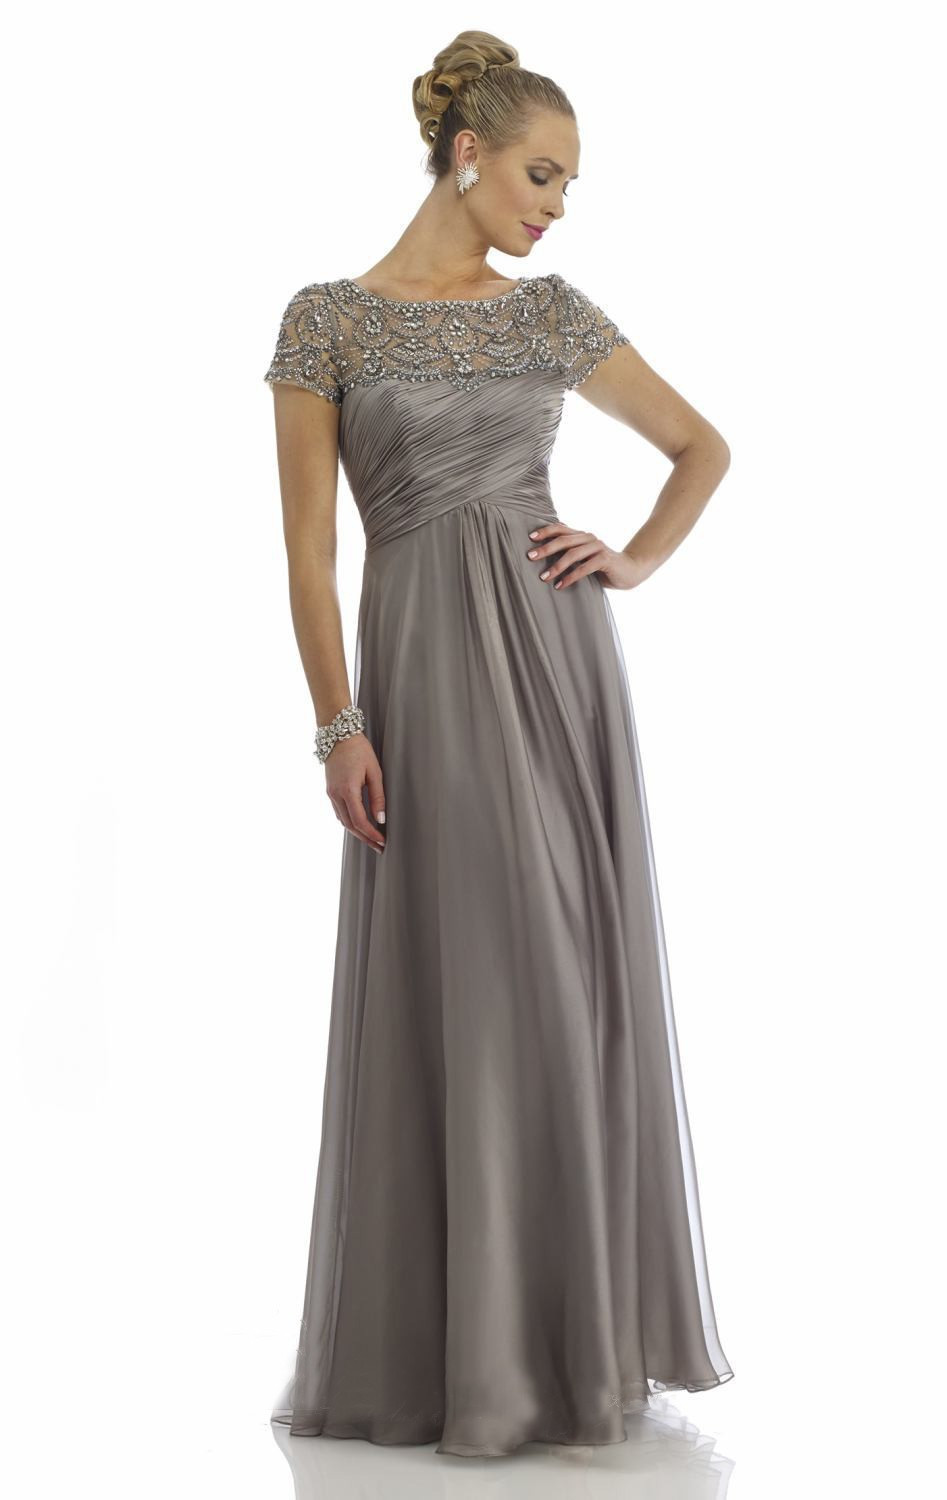 100 gray dress bridesmaid elegant san francisco wedding grey dress bridesmaid vosoi com ombrellifo Image collections